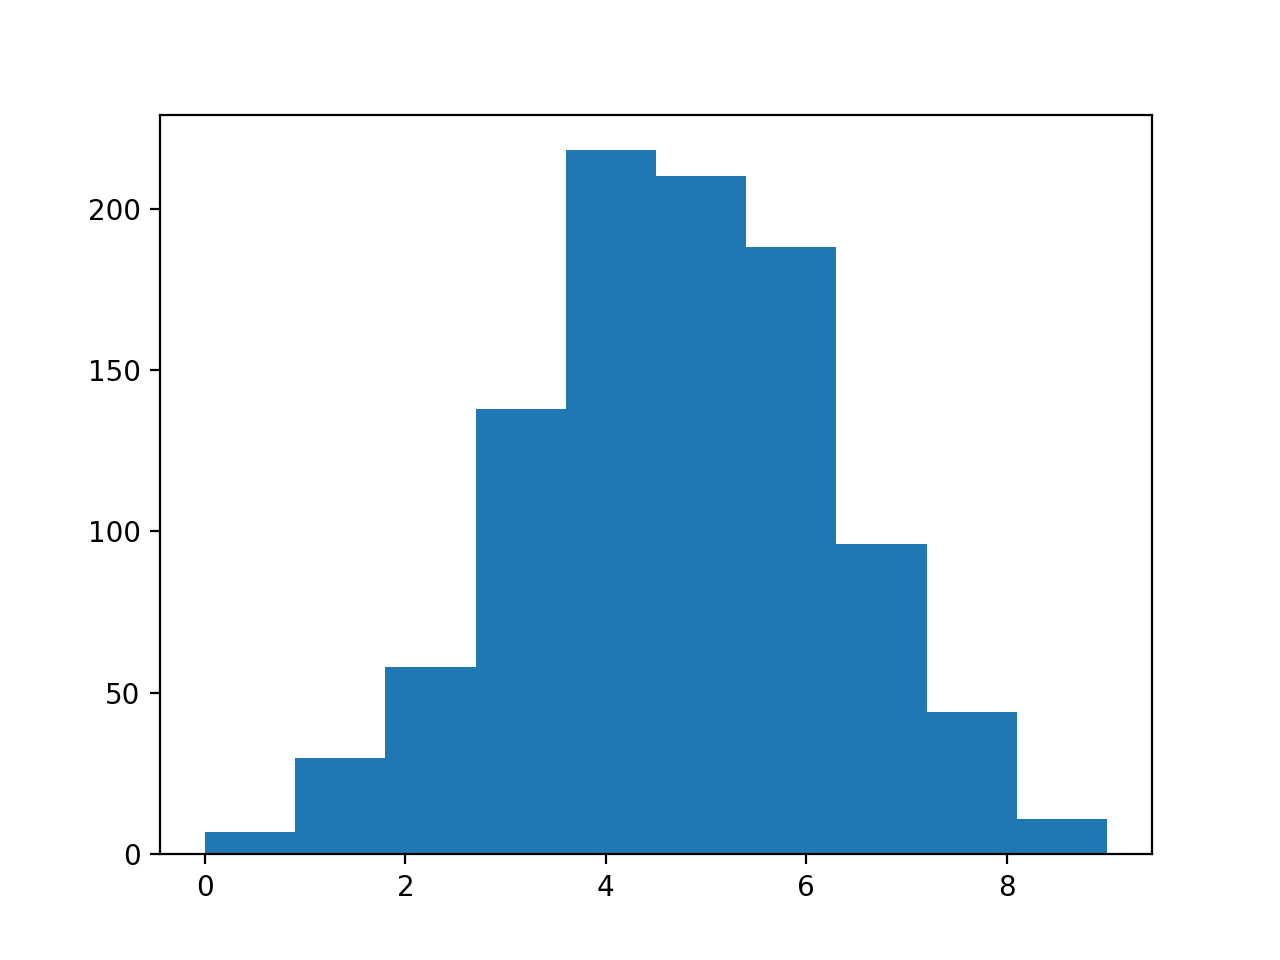 Histogram of Transformed Data With Discrete Categories